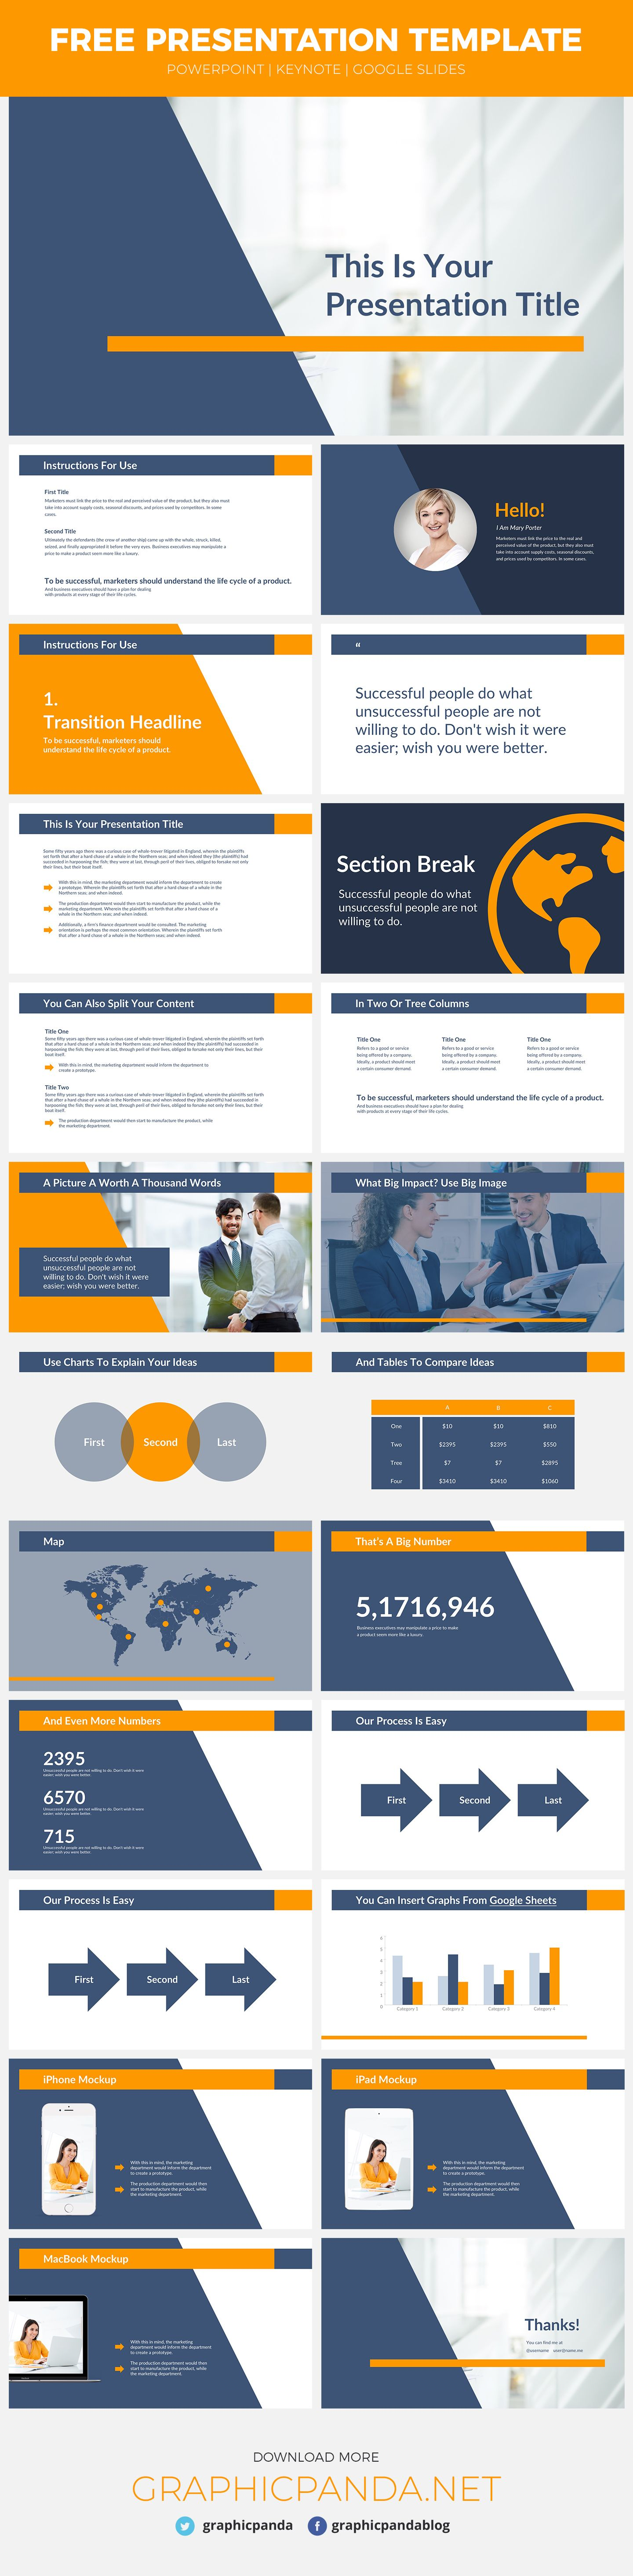 The muse free powerpoint template was created to save you a lot of the muse free powerpoint template was created to save you a lot of time thinking about what you can do to make a business professional and creative template toneelgroepblik Gallery